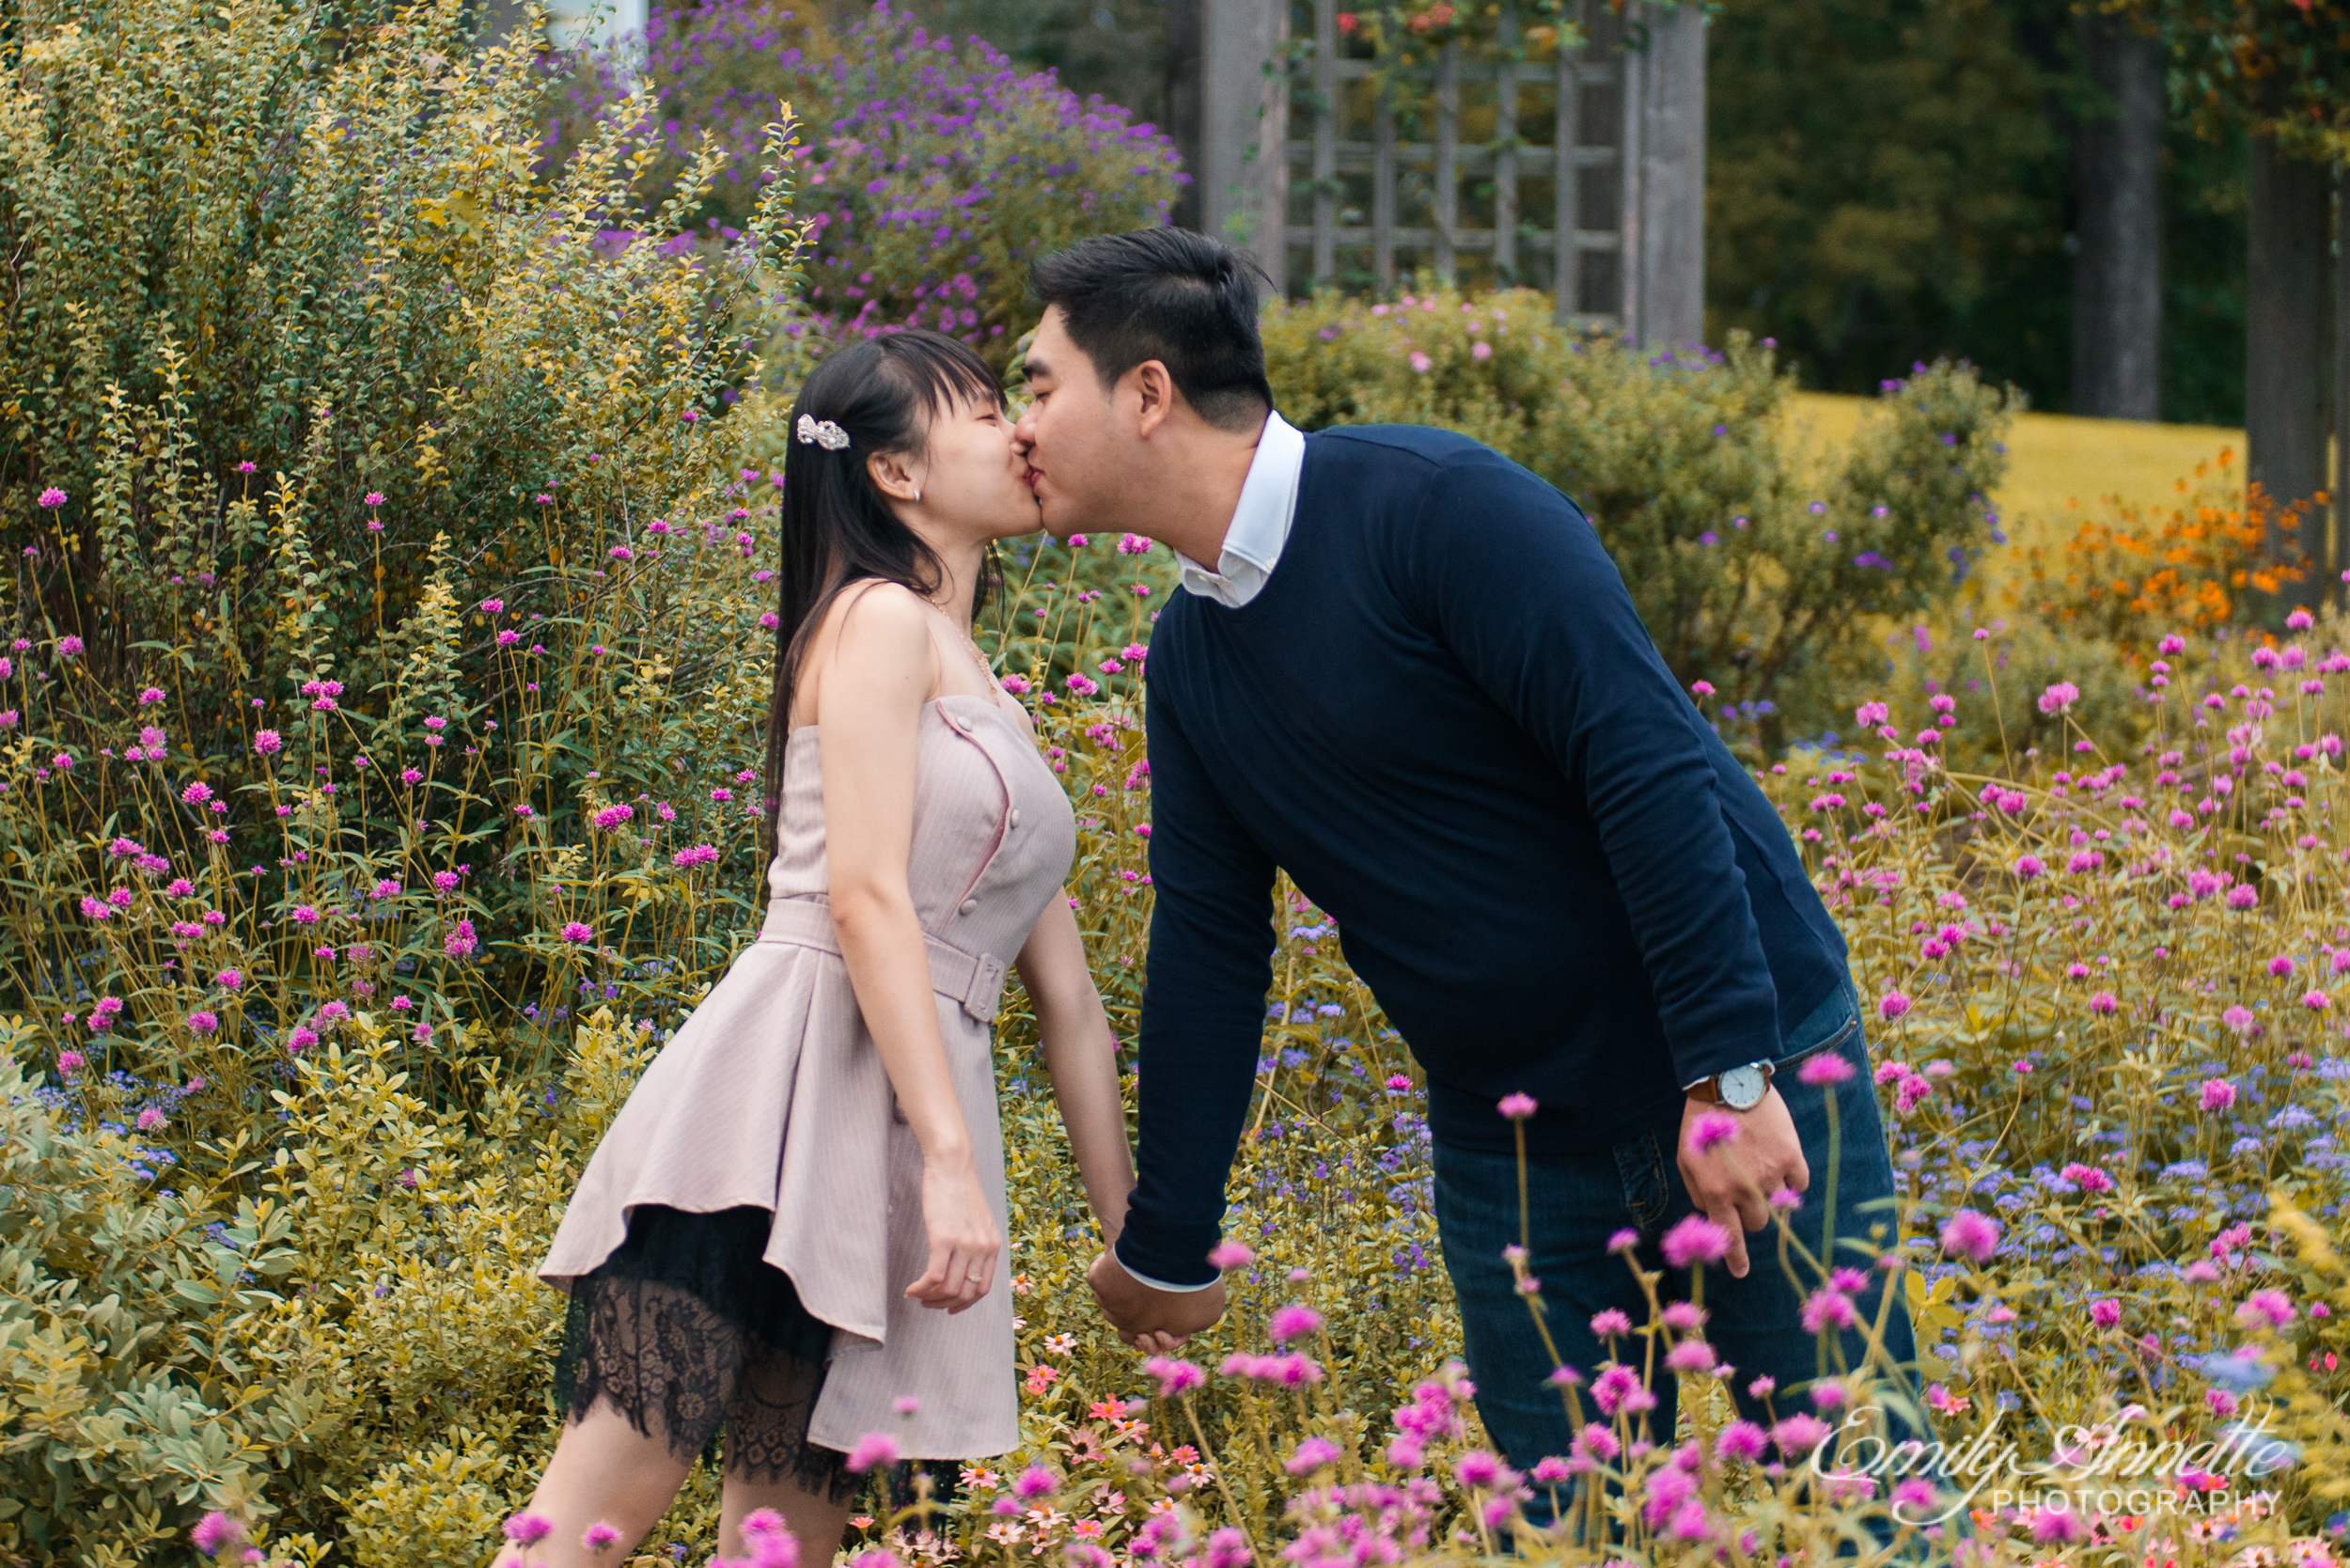 A young couple hold hands and kiss in the middle of the garden at Green Spring Gardens Park in Fairfax, Virginia